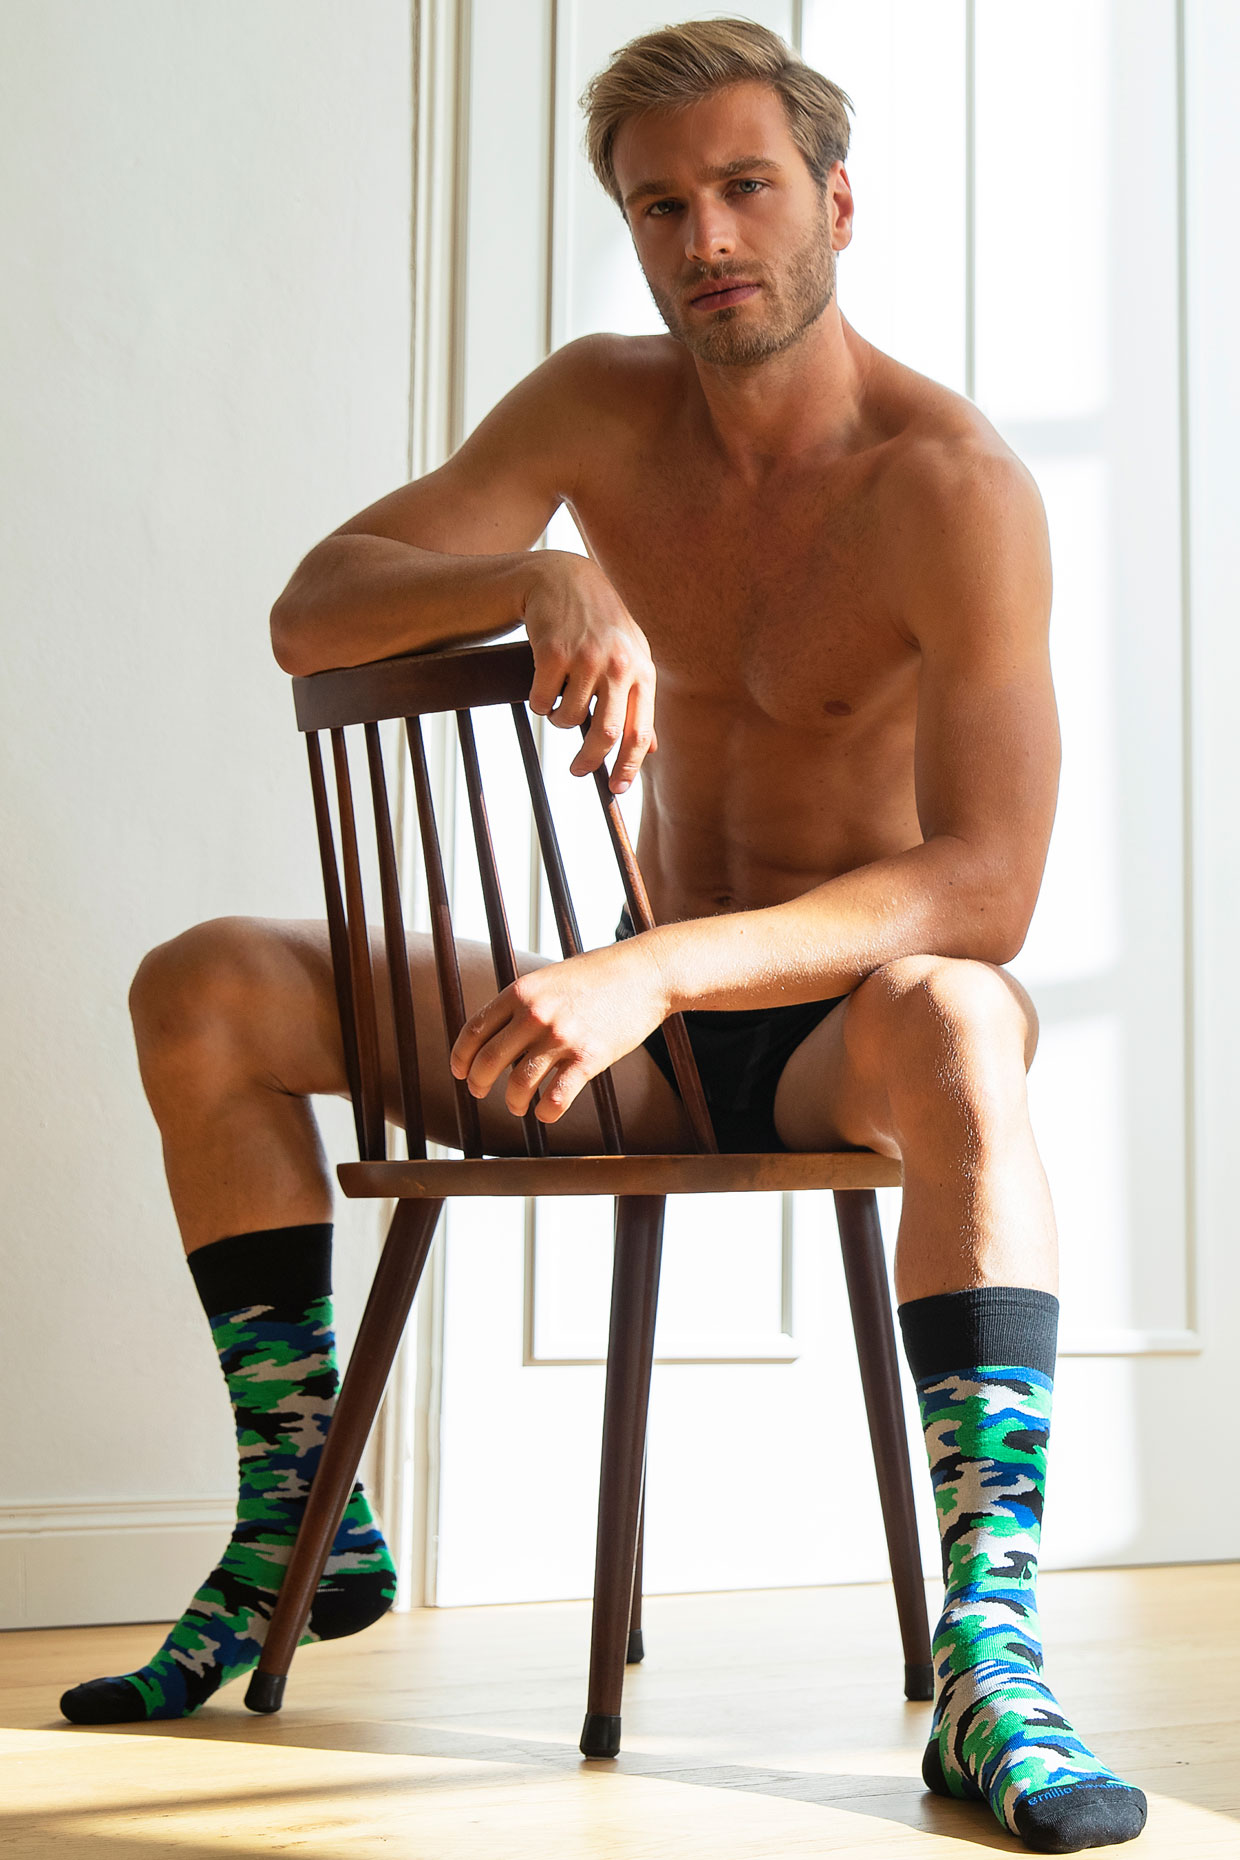 MANTYHOSE: Tights for Man - A unique modern style